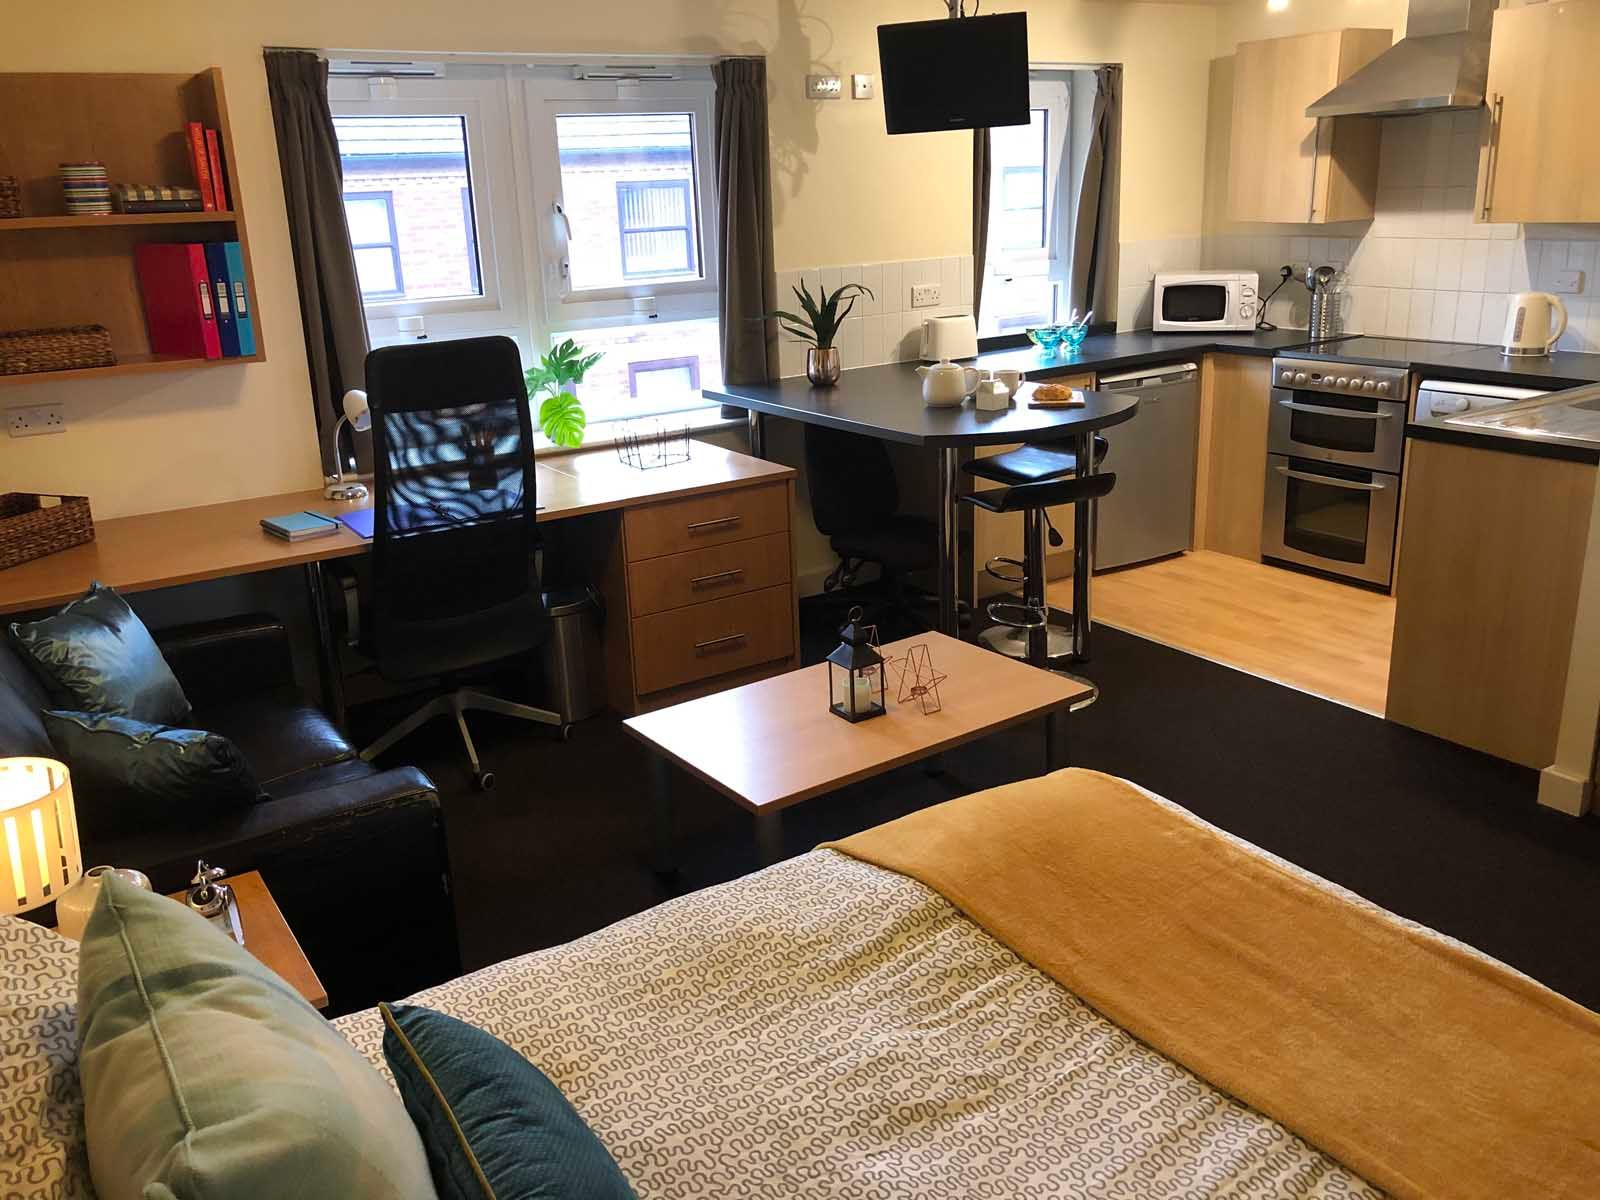 Property photo 1 of 9. Deluxe Studio The Foundry Loughborough